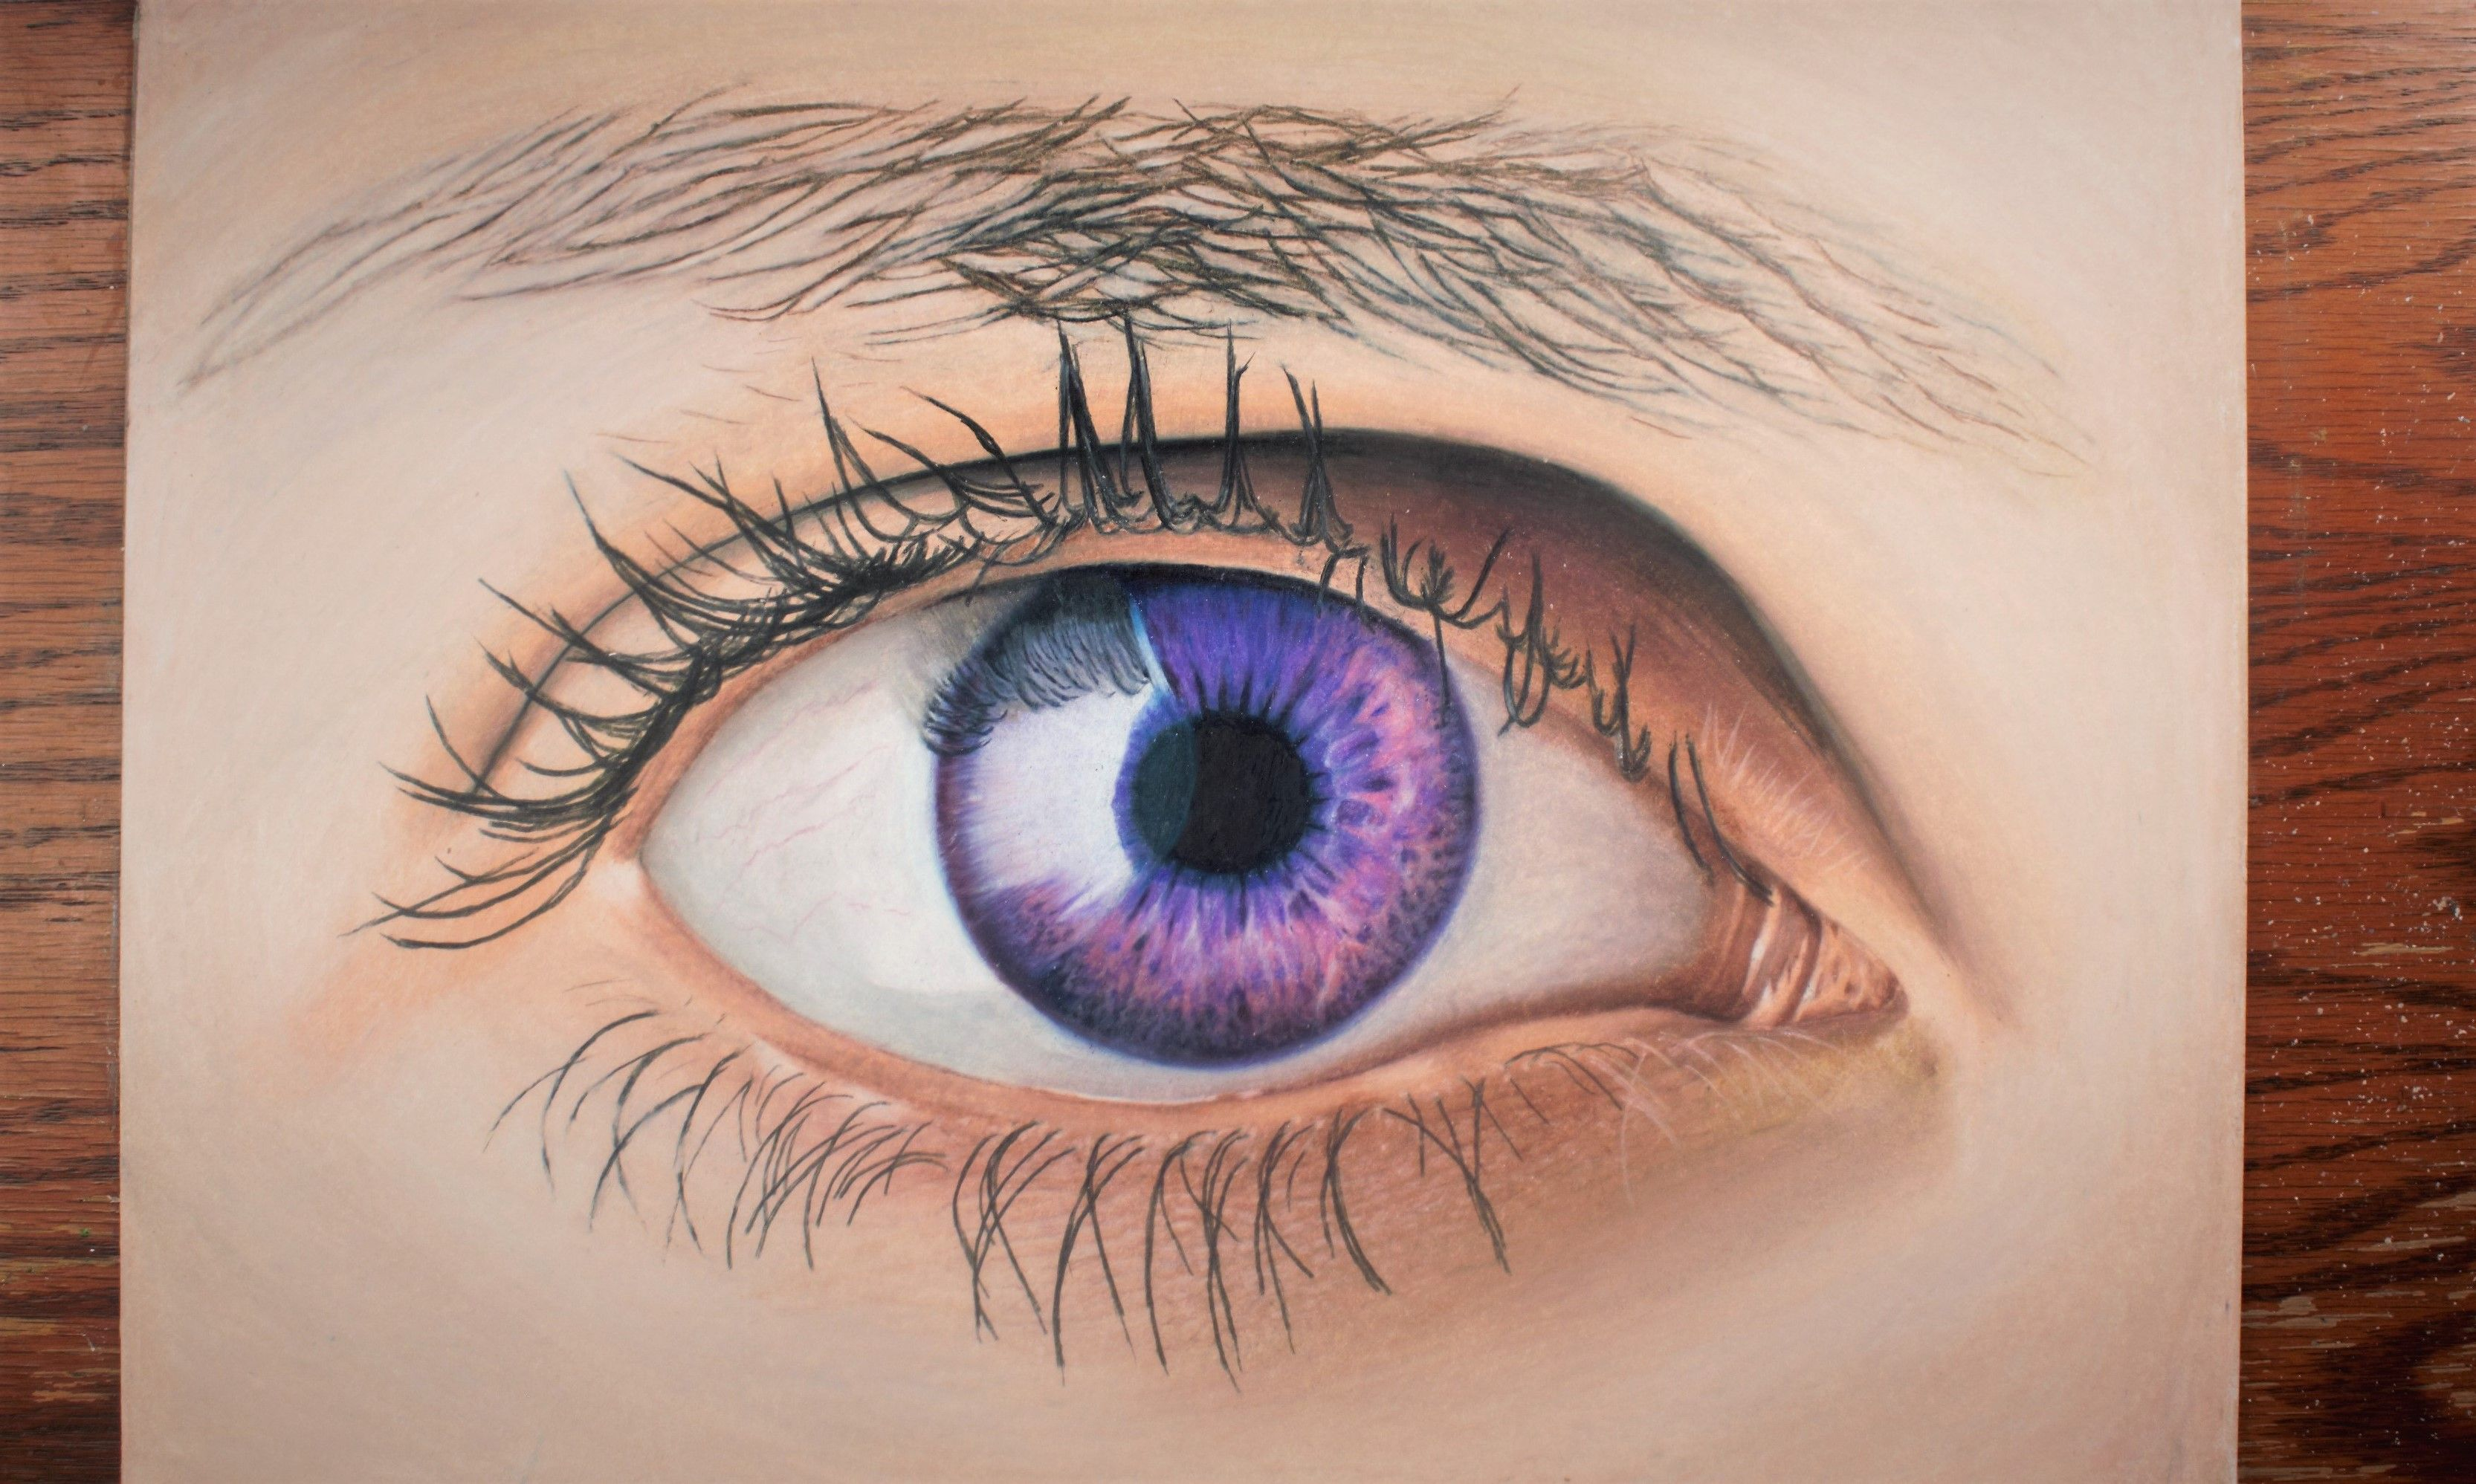 Drawing A Realistic Human Eye With Colored Pencils